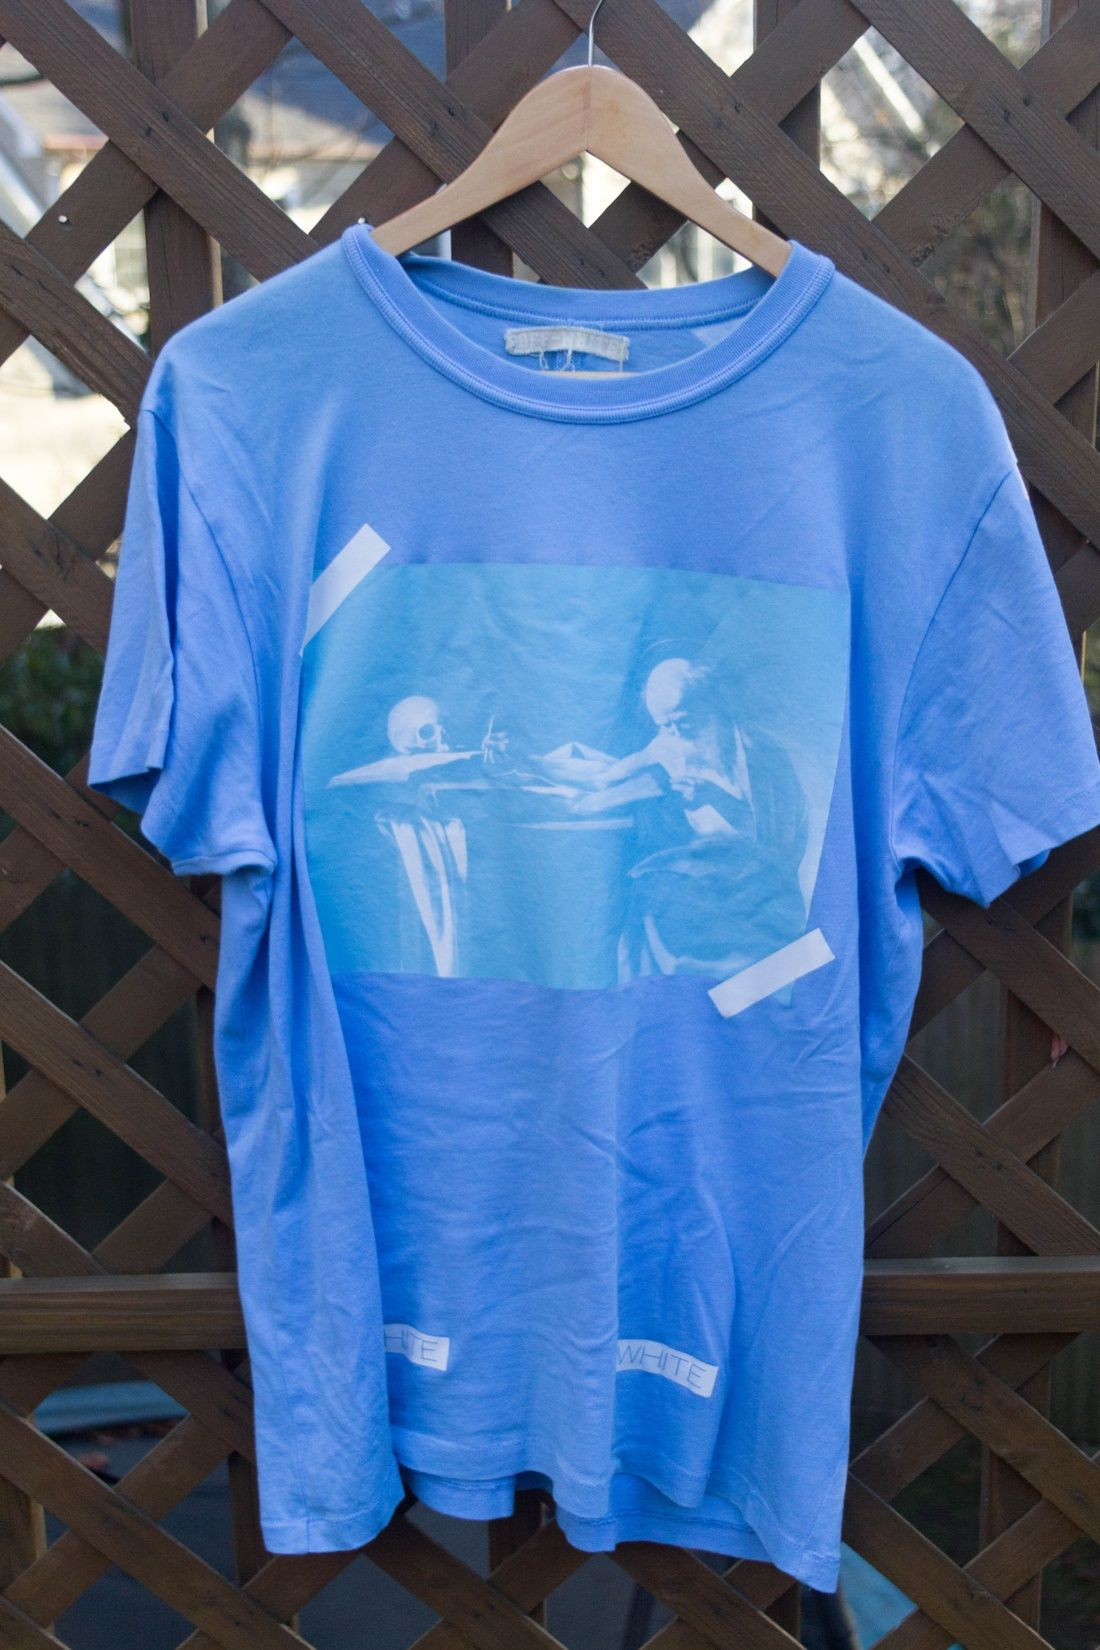 Off White Og Blue Caravaggio Tee Size S 162 Tees Mens Tops Tops